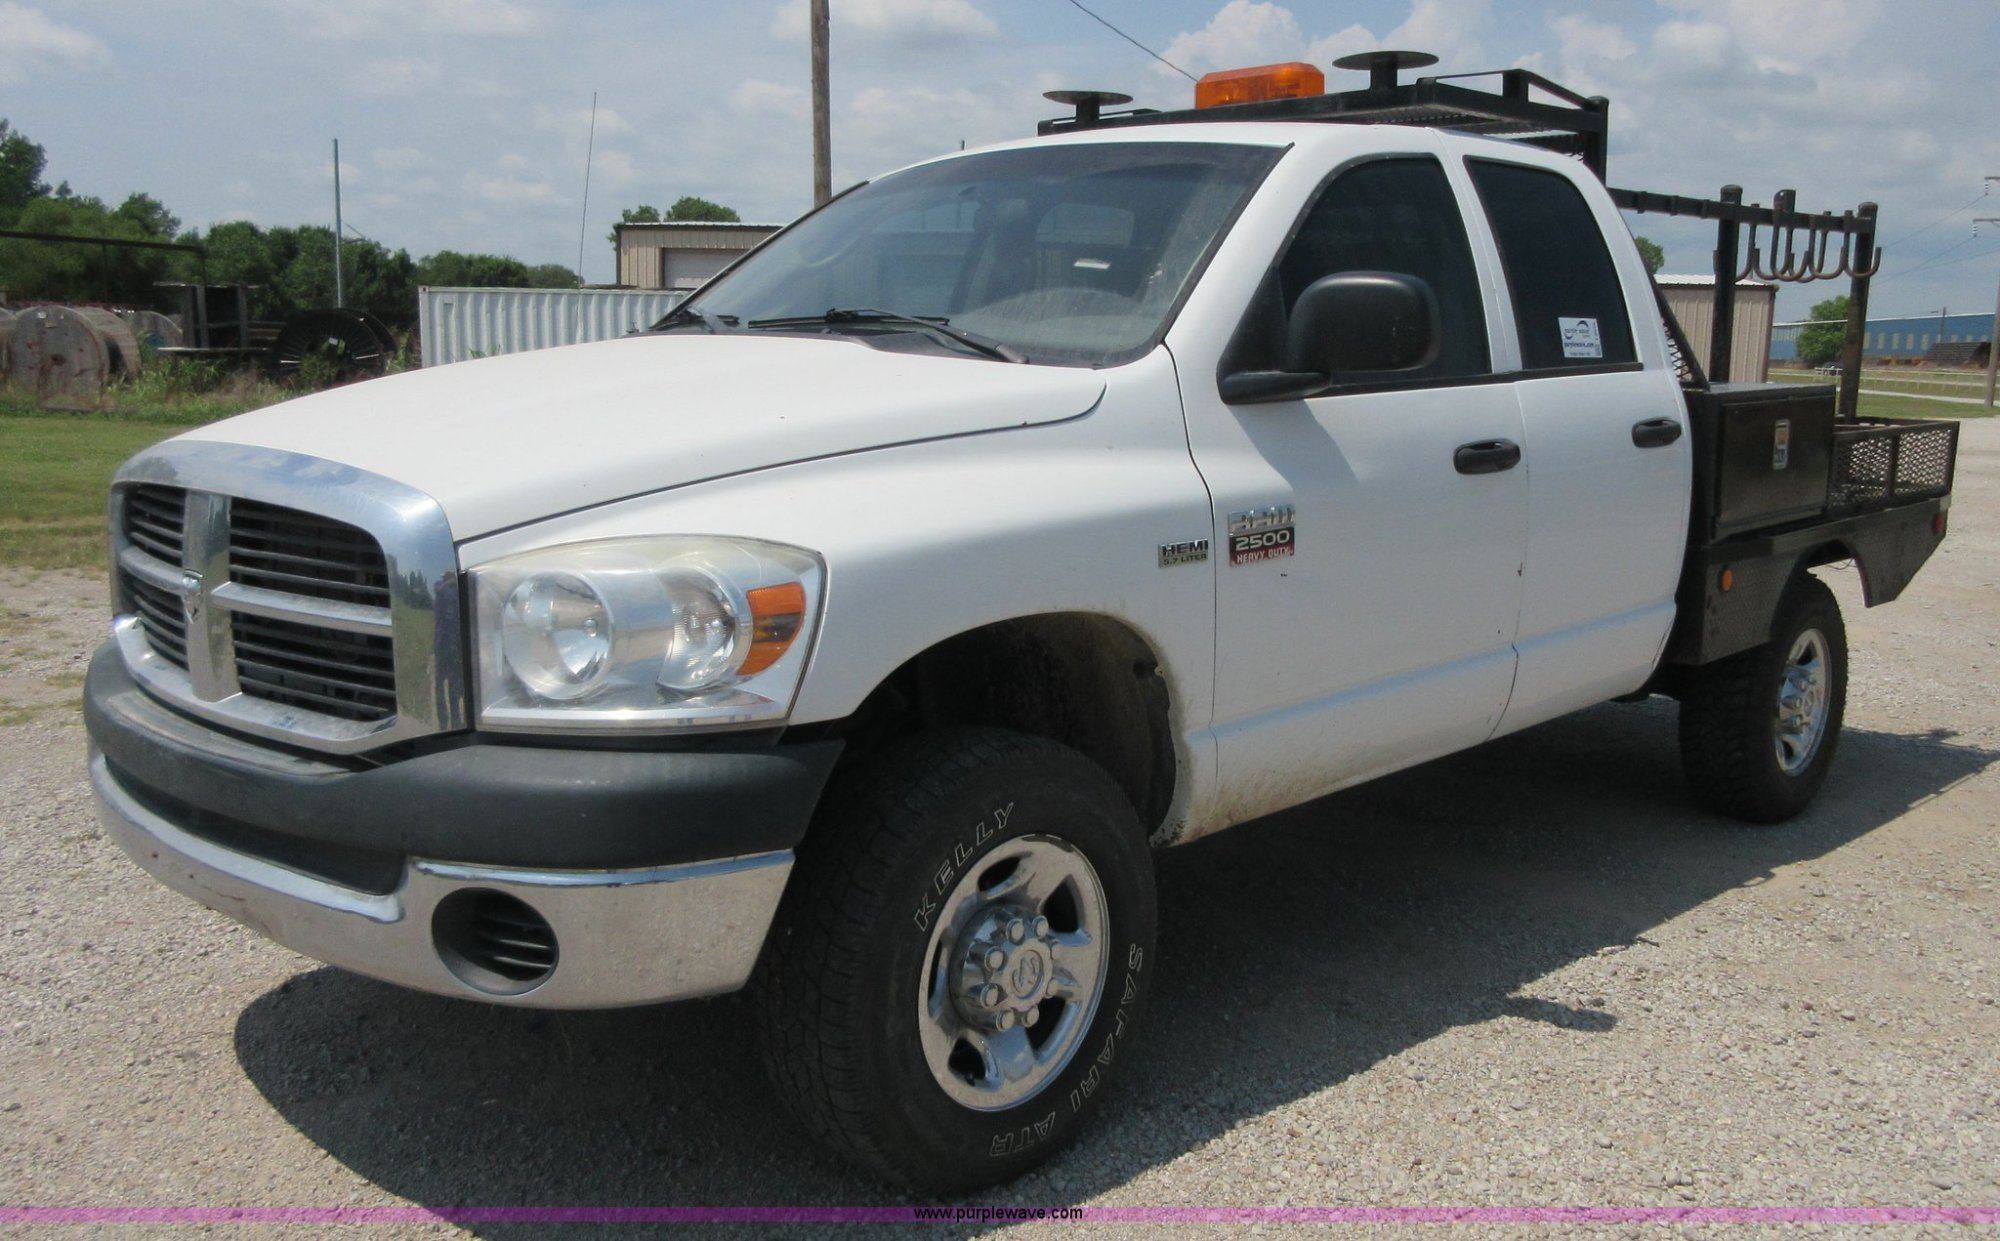 hight resolution of i2026 image for item i2026 2009 dodge ram 2500 sl quad cab